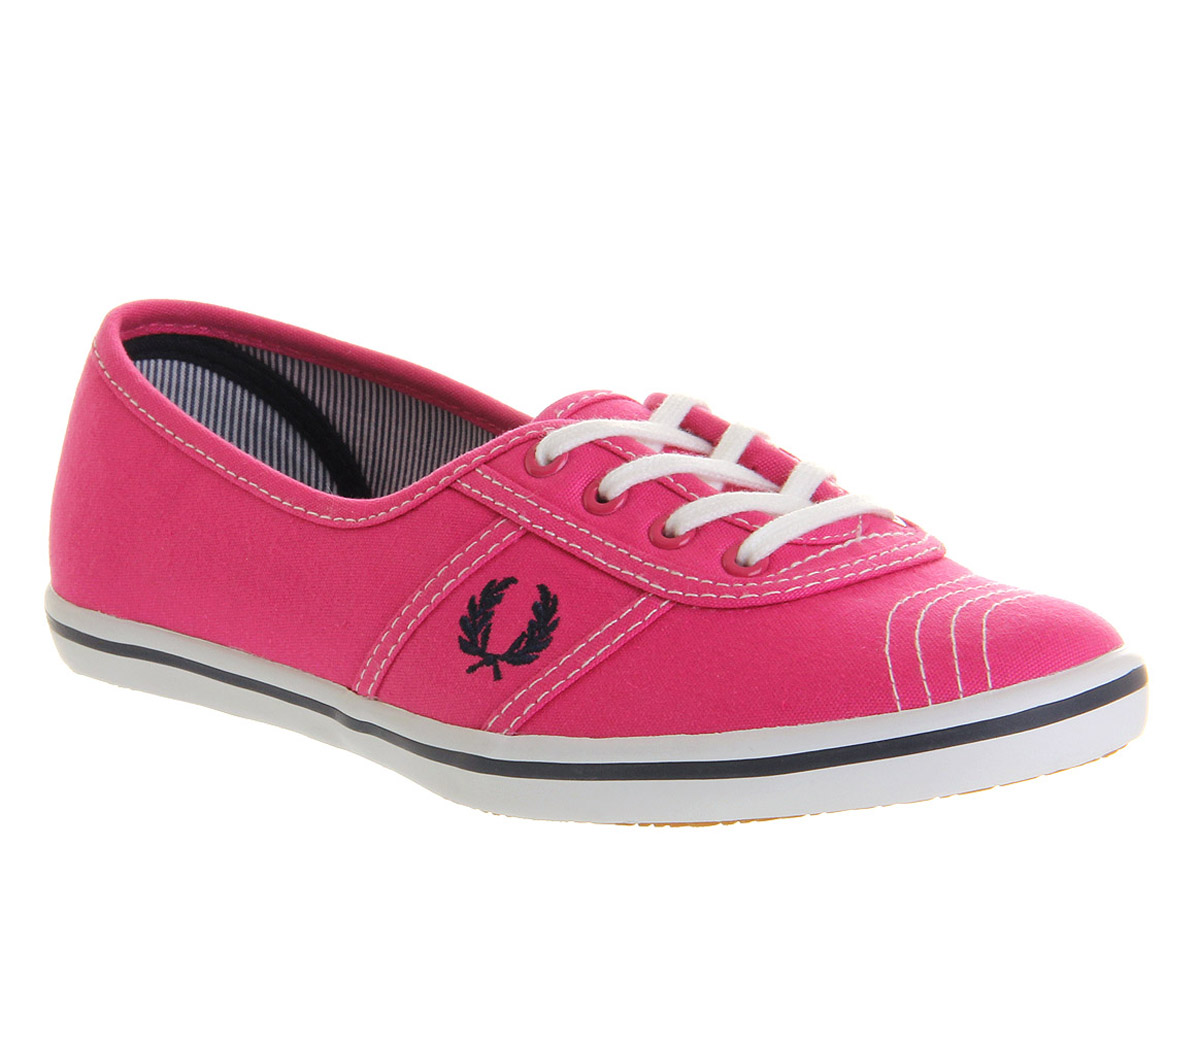 Image is loading Womens-Fred-Perry-Aubrey-Wht-ginger-Snap-Trainers